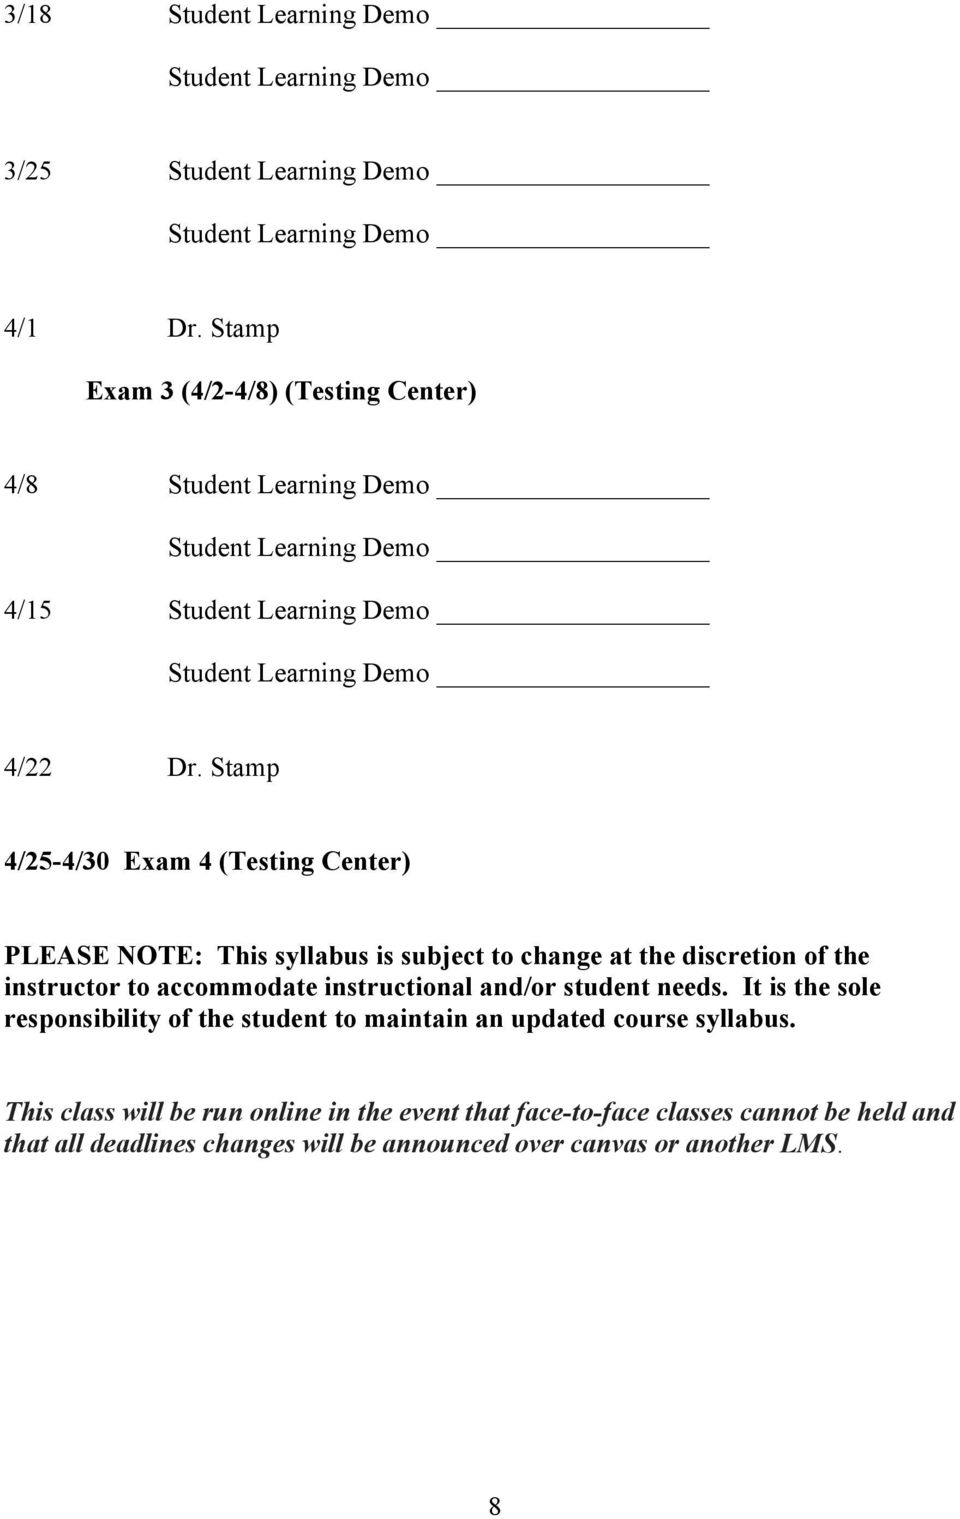 Stamp 4/25-4/30 Exam 4 (Testing Center) PLEASE NOTE: This syllabus is subject to change at the discretion of the instructor to accommodate instructional and/or student